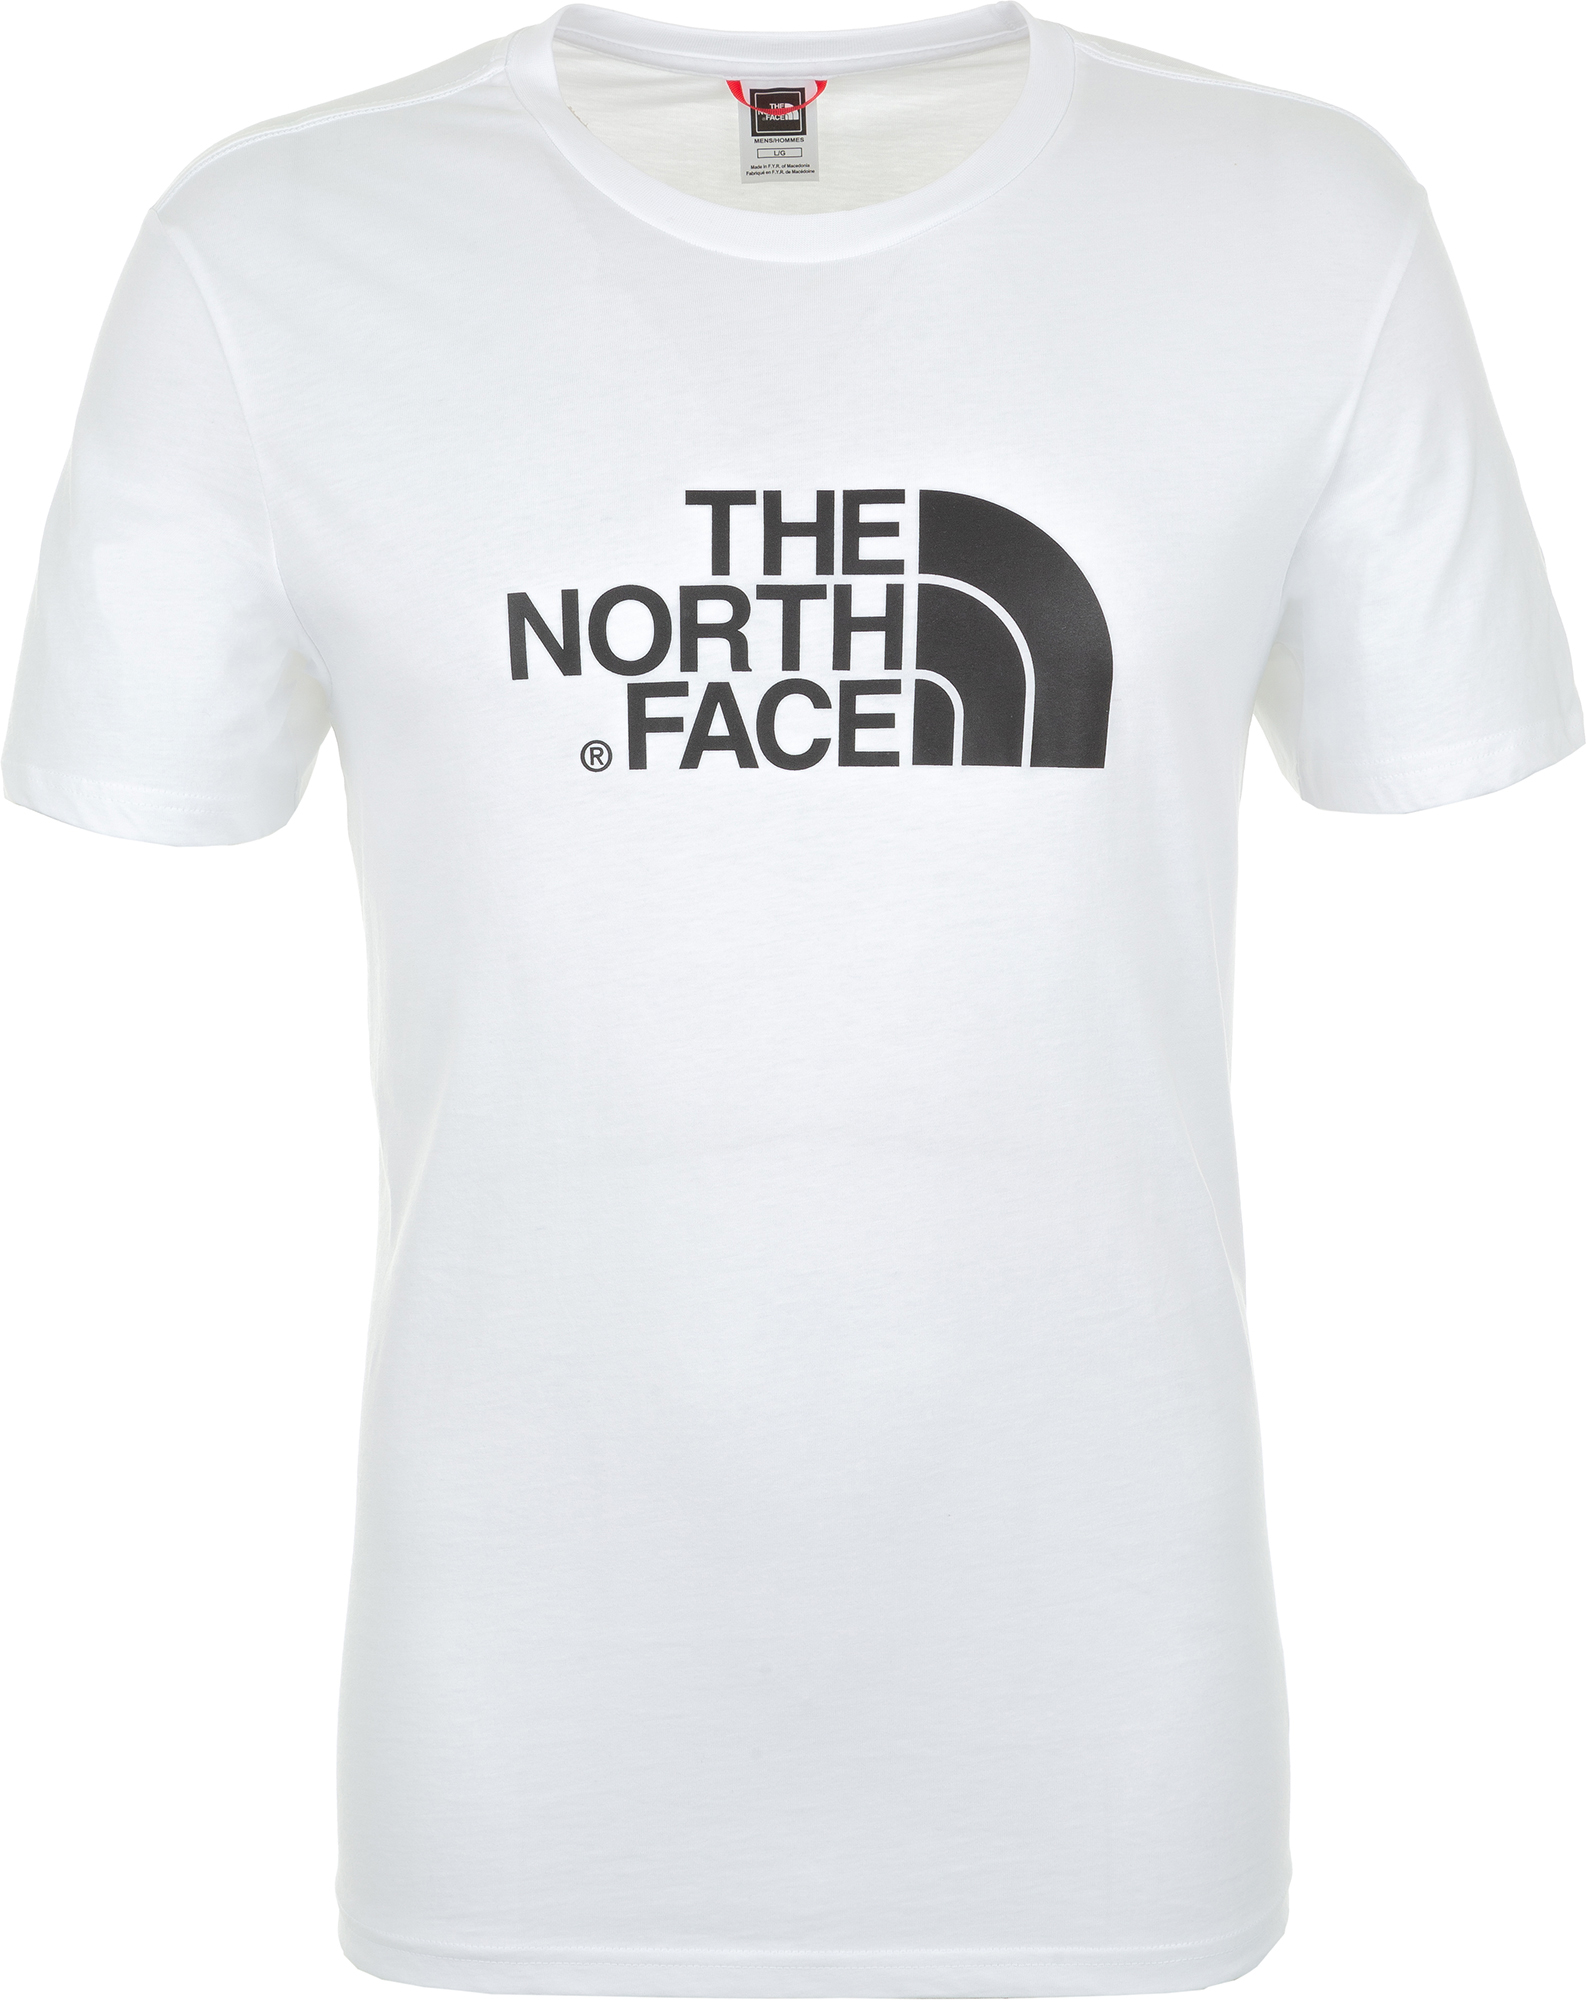 Фото - The North Face Футболка мужская The North Face Easy, размер 44-46 the north face футболка женская the north face easy размер 44